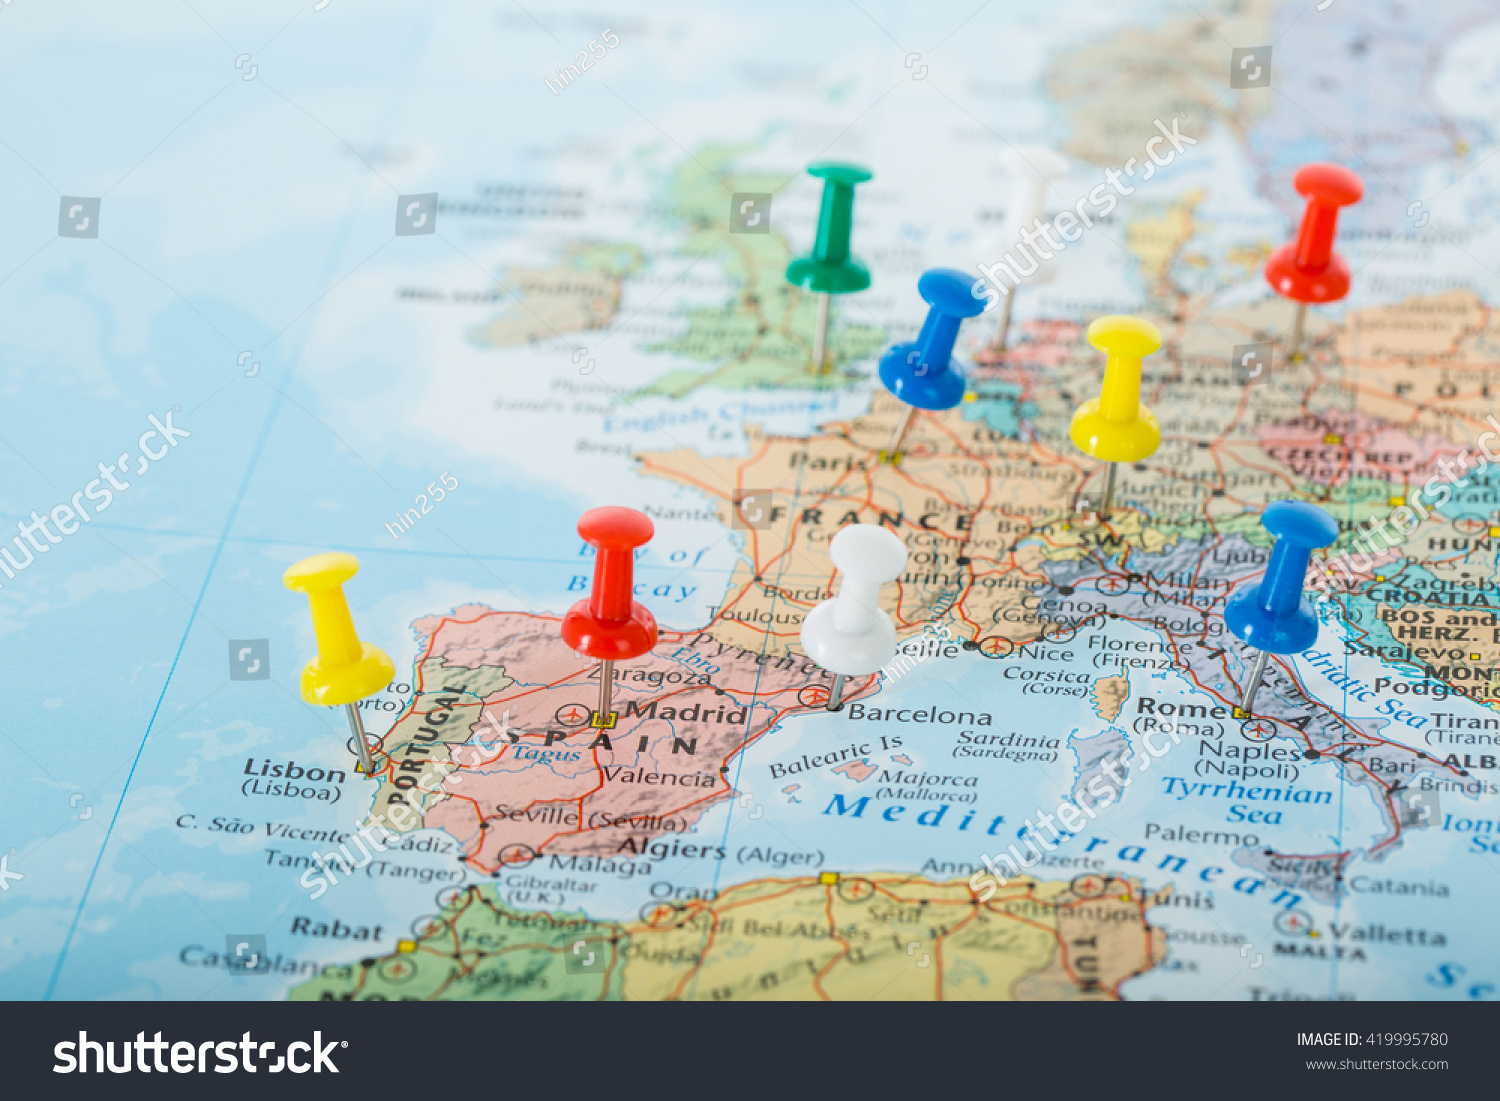 Europe Map Pins Travel Your Planning Photo 419995780 – Travel Planning Map